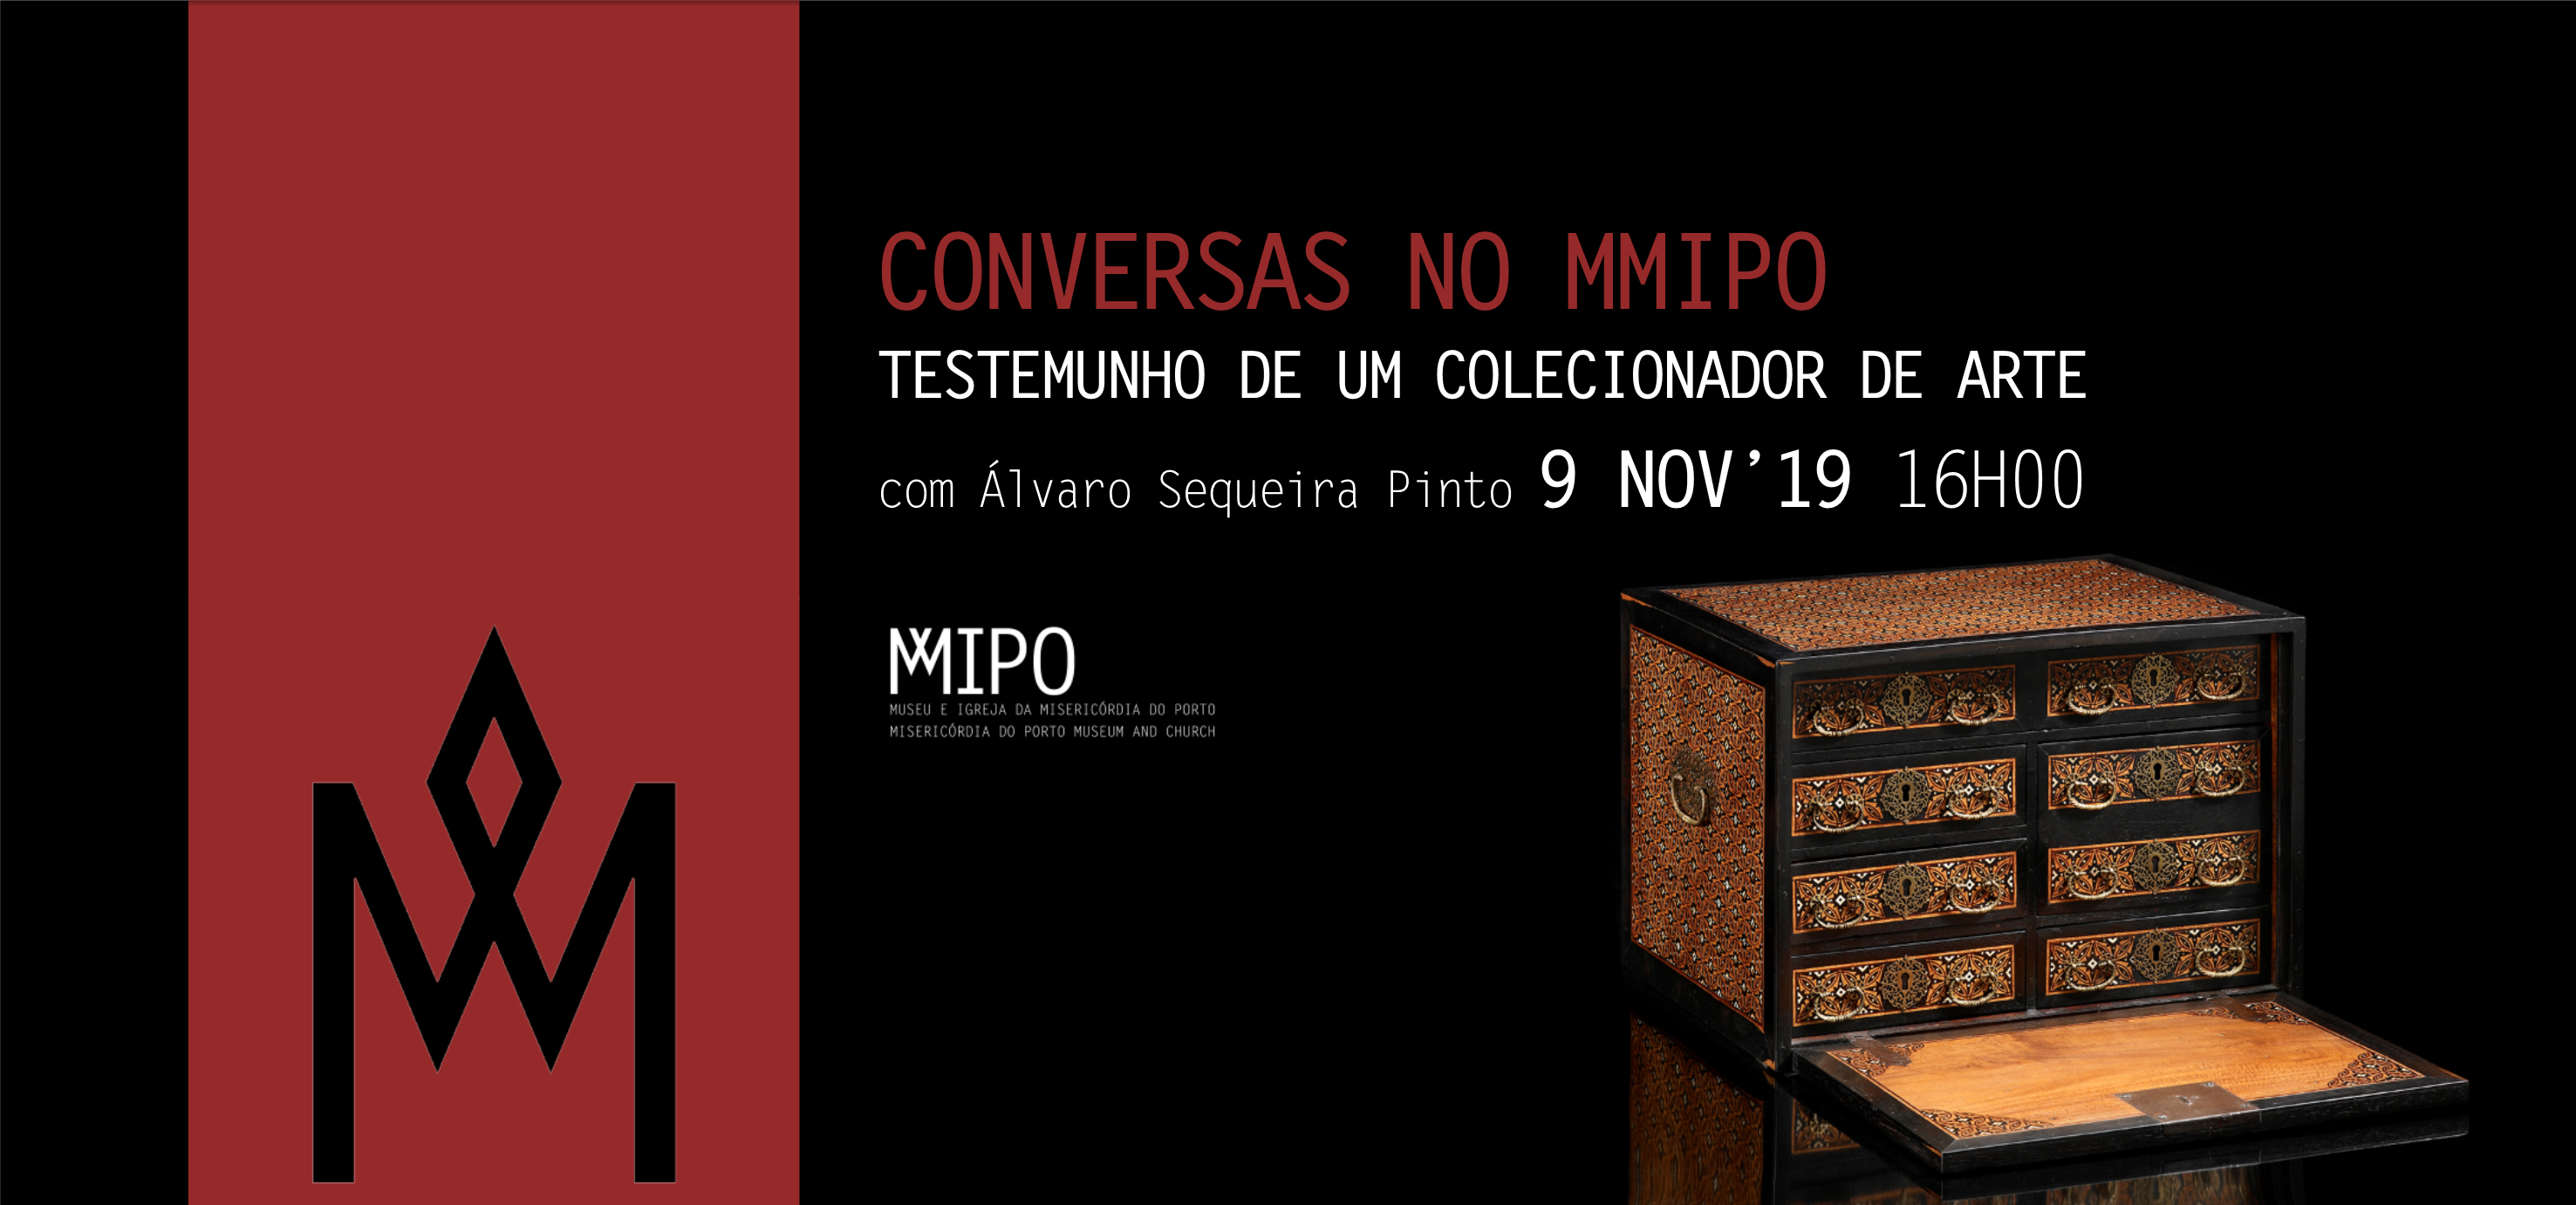 http://www.mmipo.pt/assets/misc/slideshow/2019/banner.png